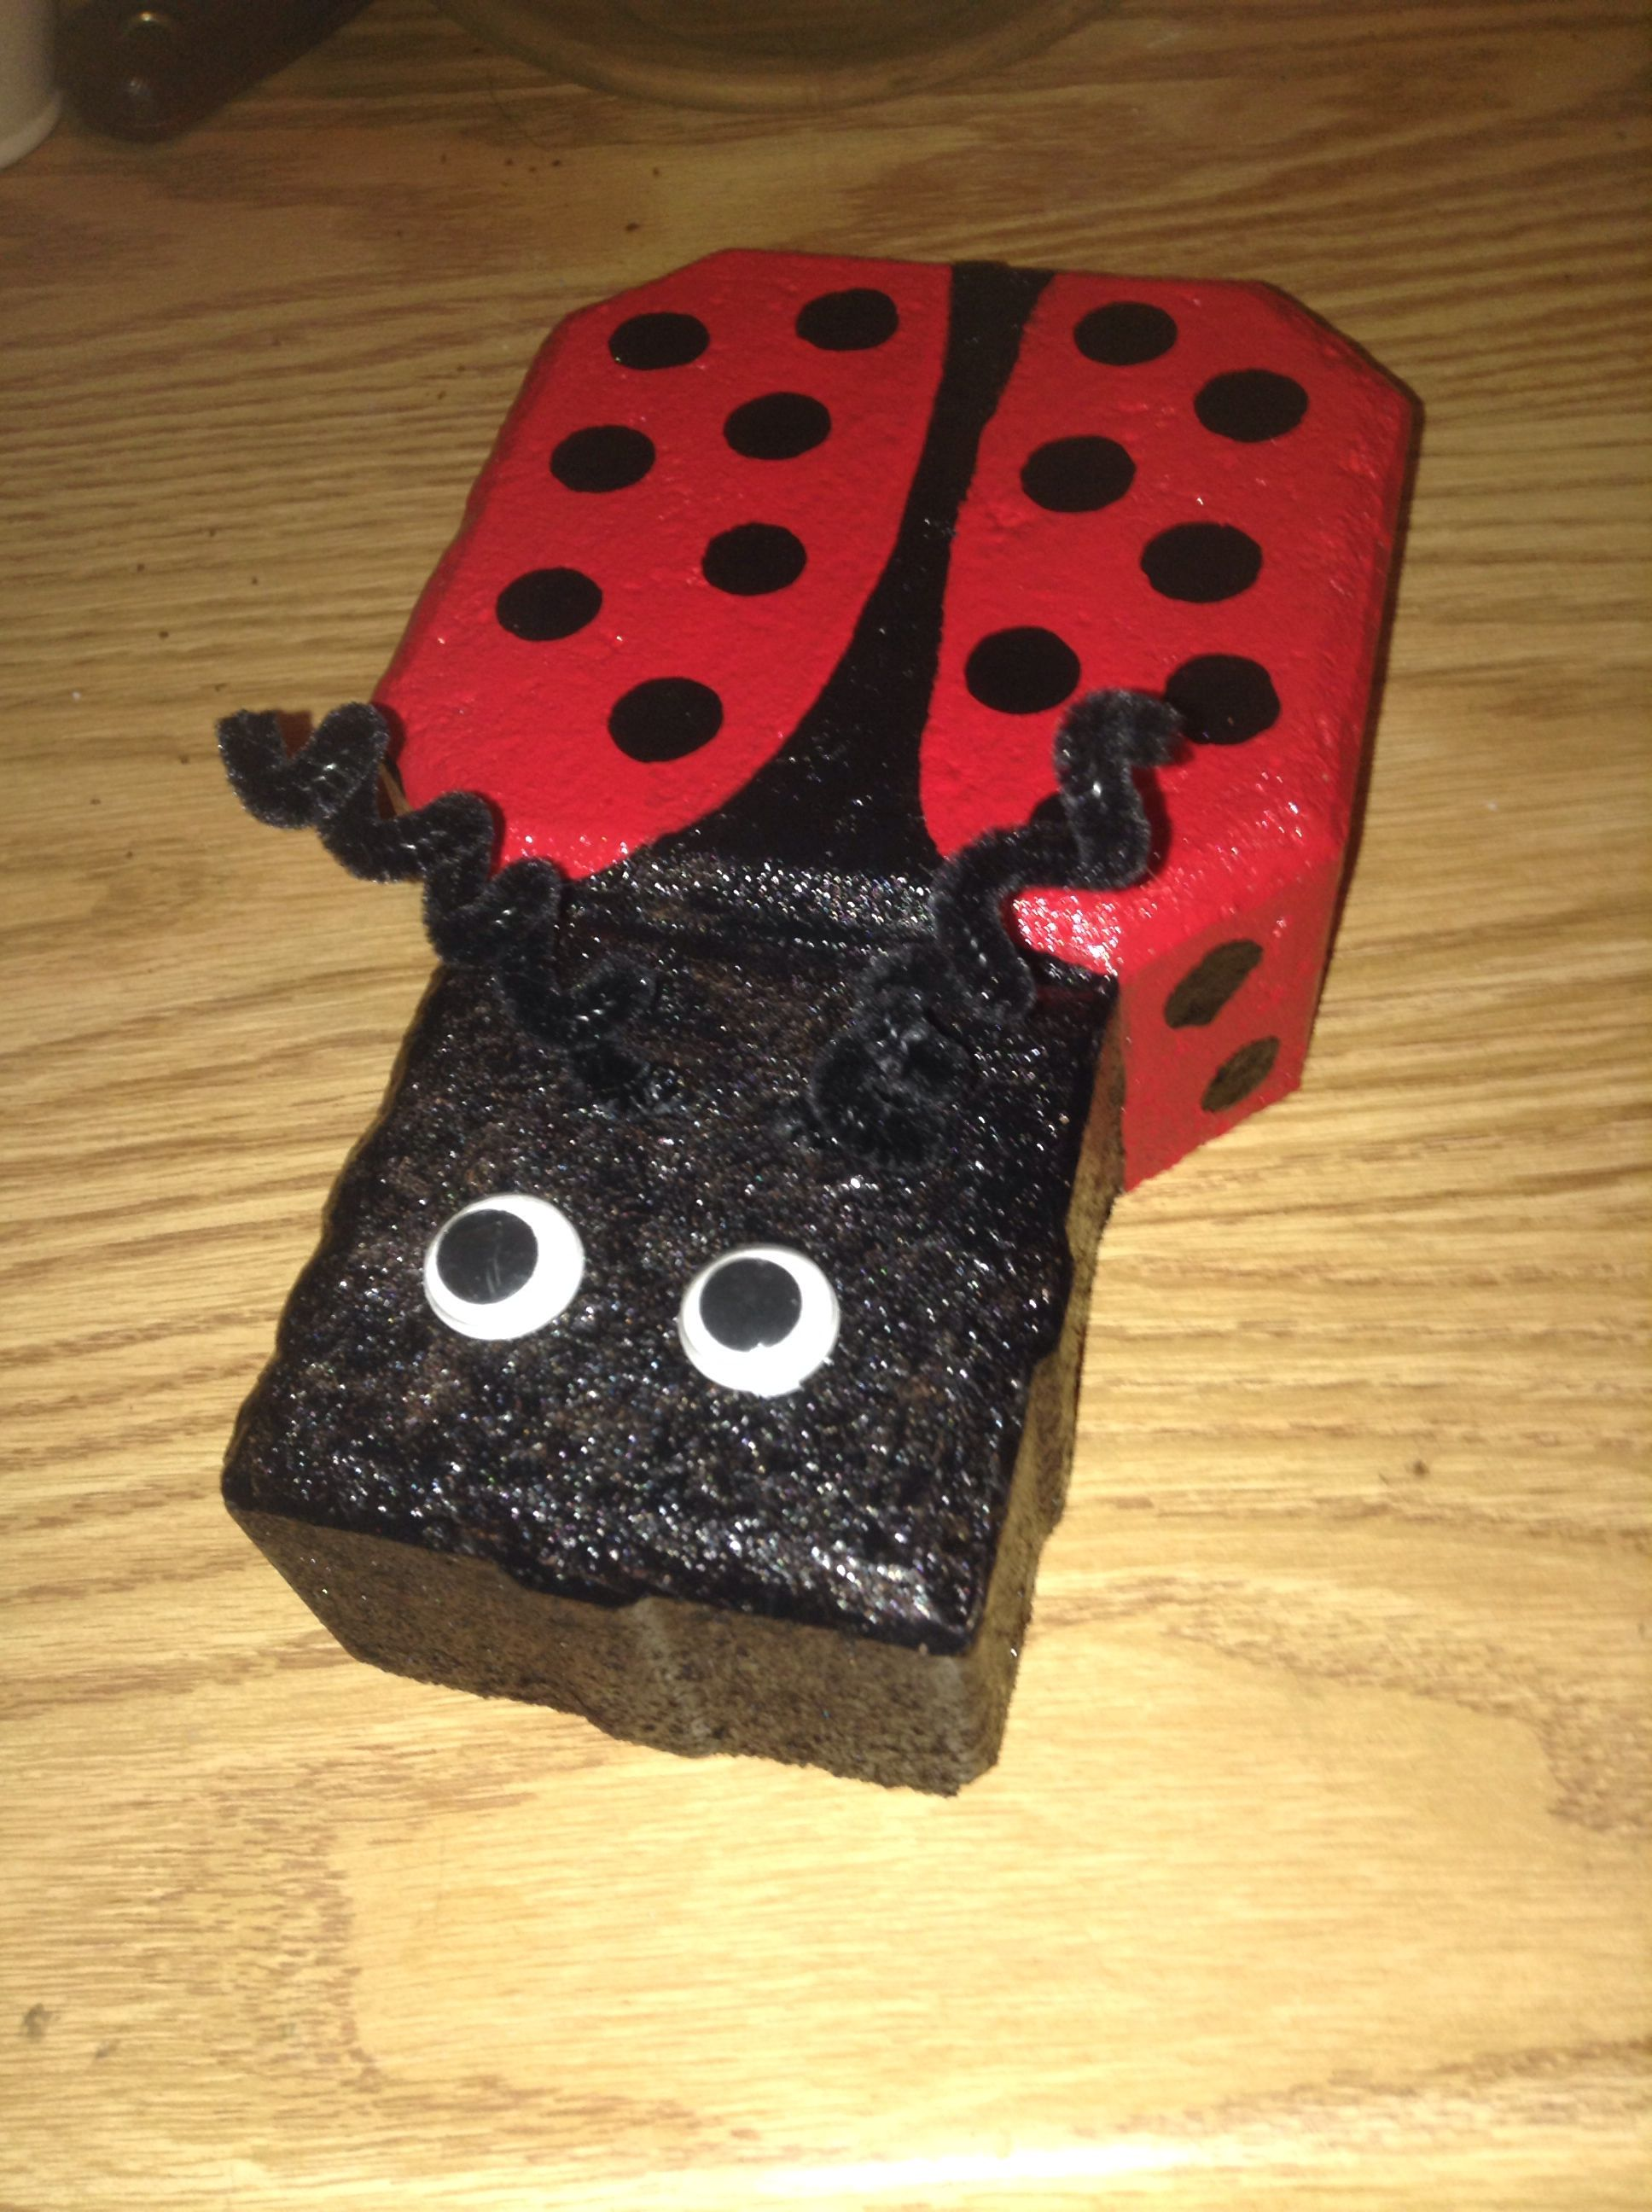 I painted a ladybug on a keyhole paver. Ready for the garden.